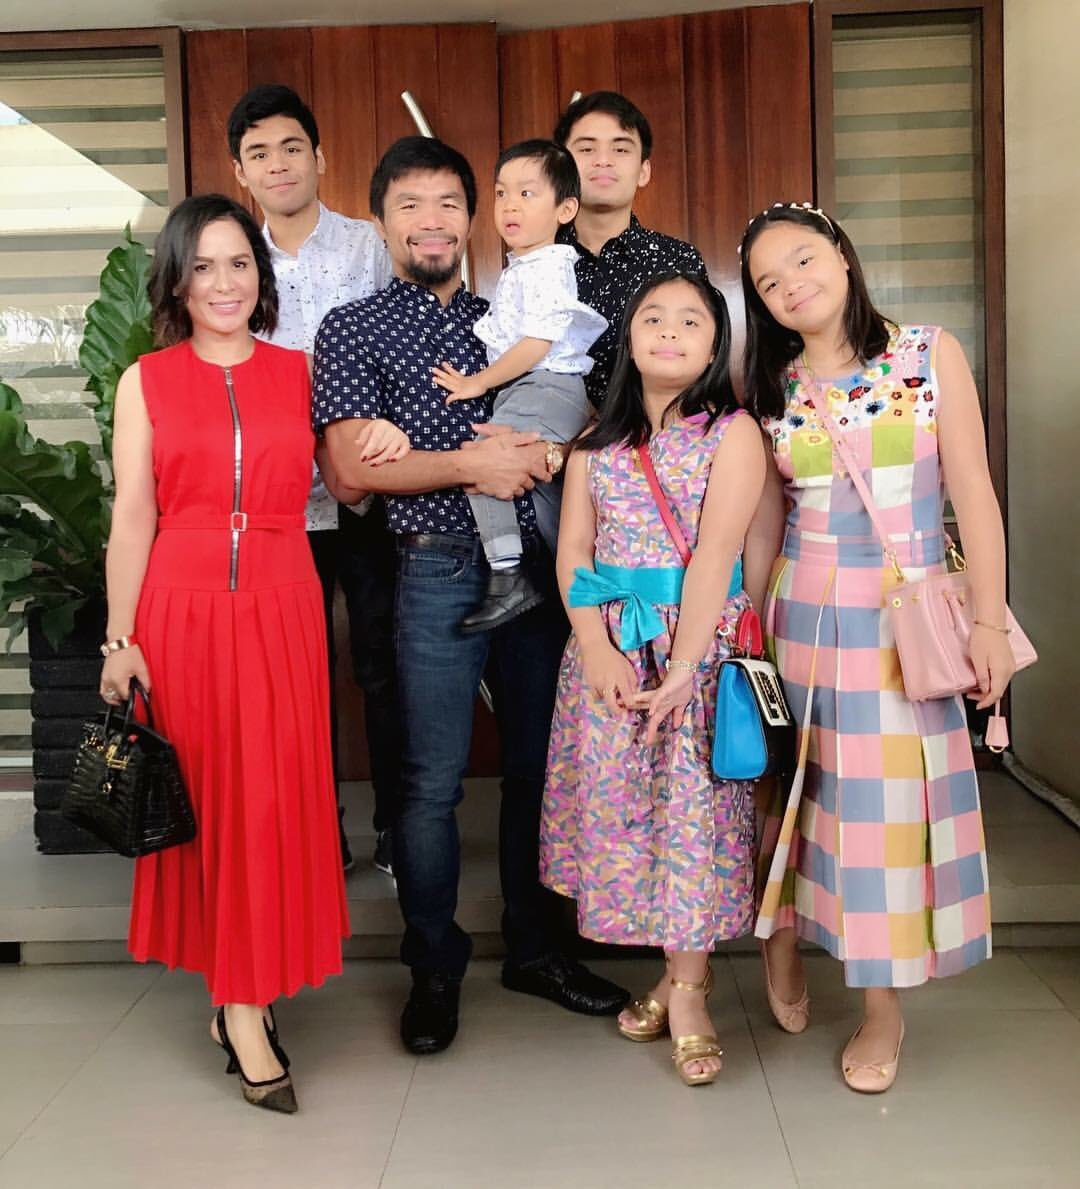 Husband and wife, Manny and Jinkee with their children